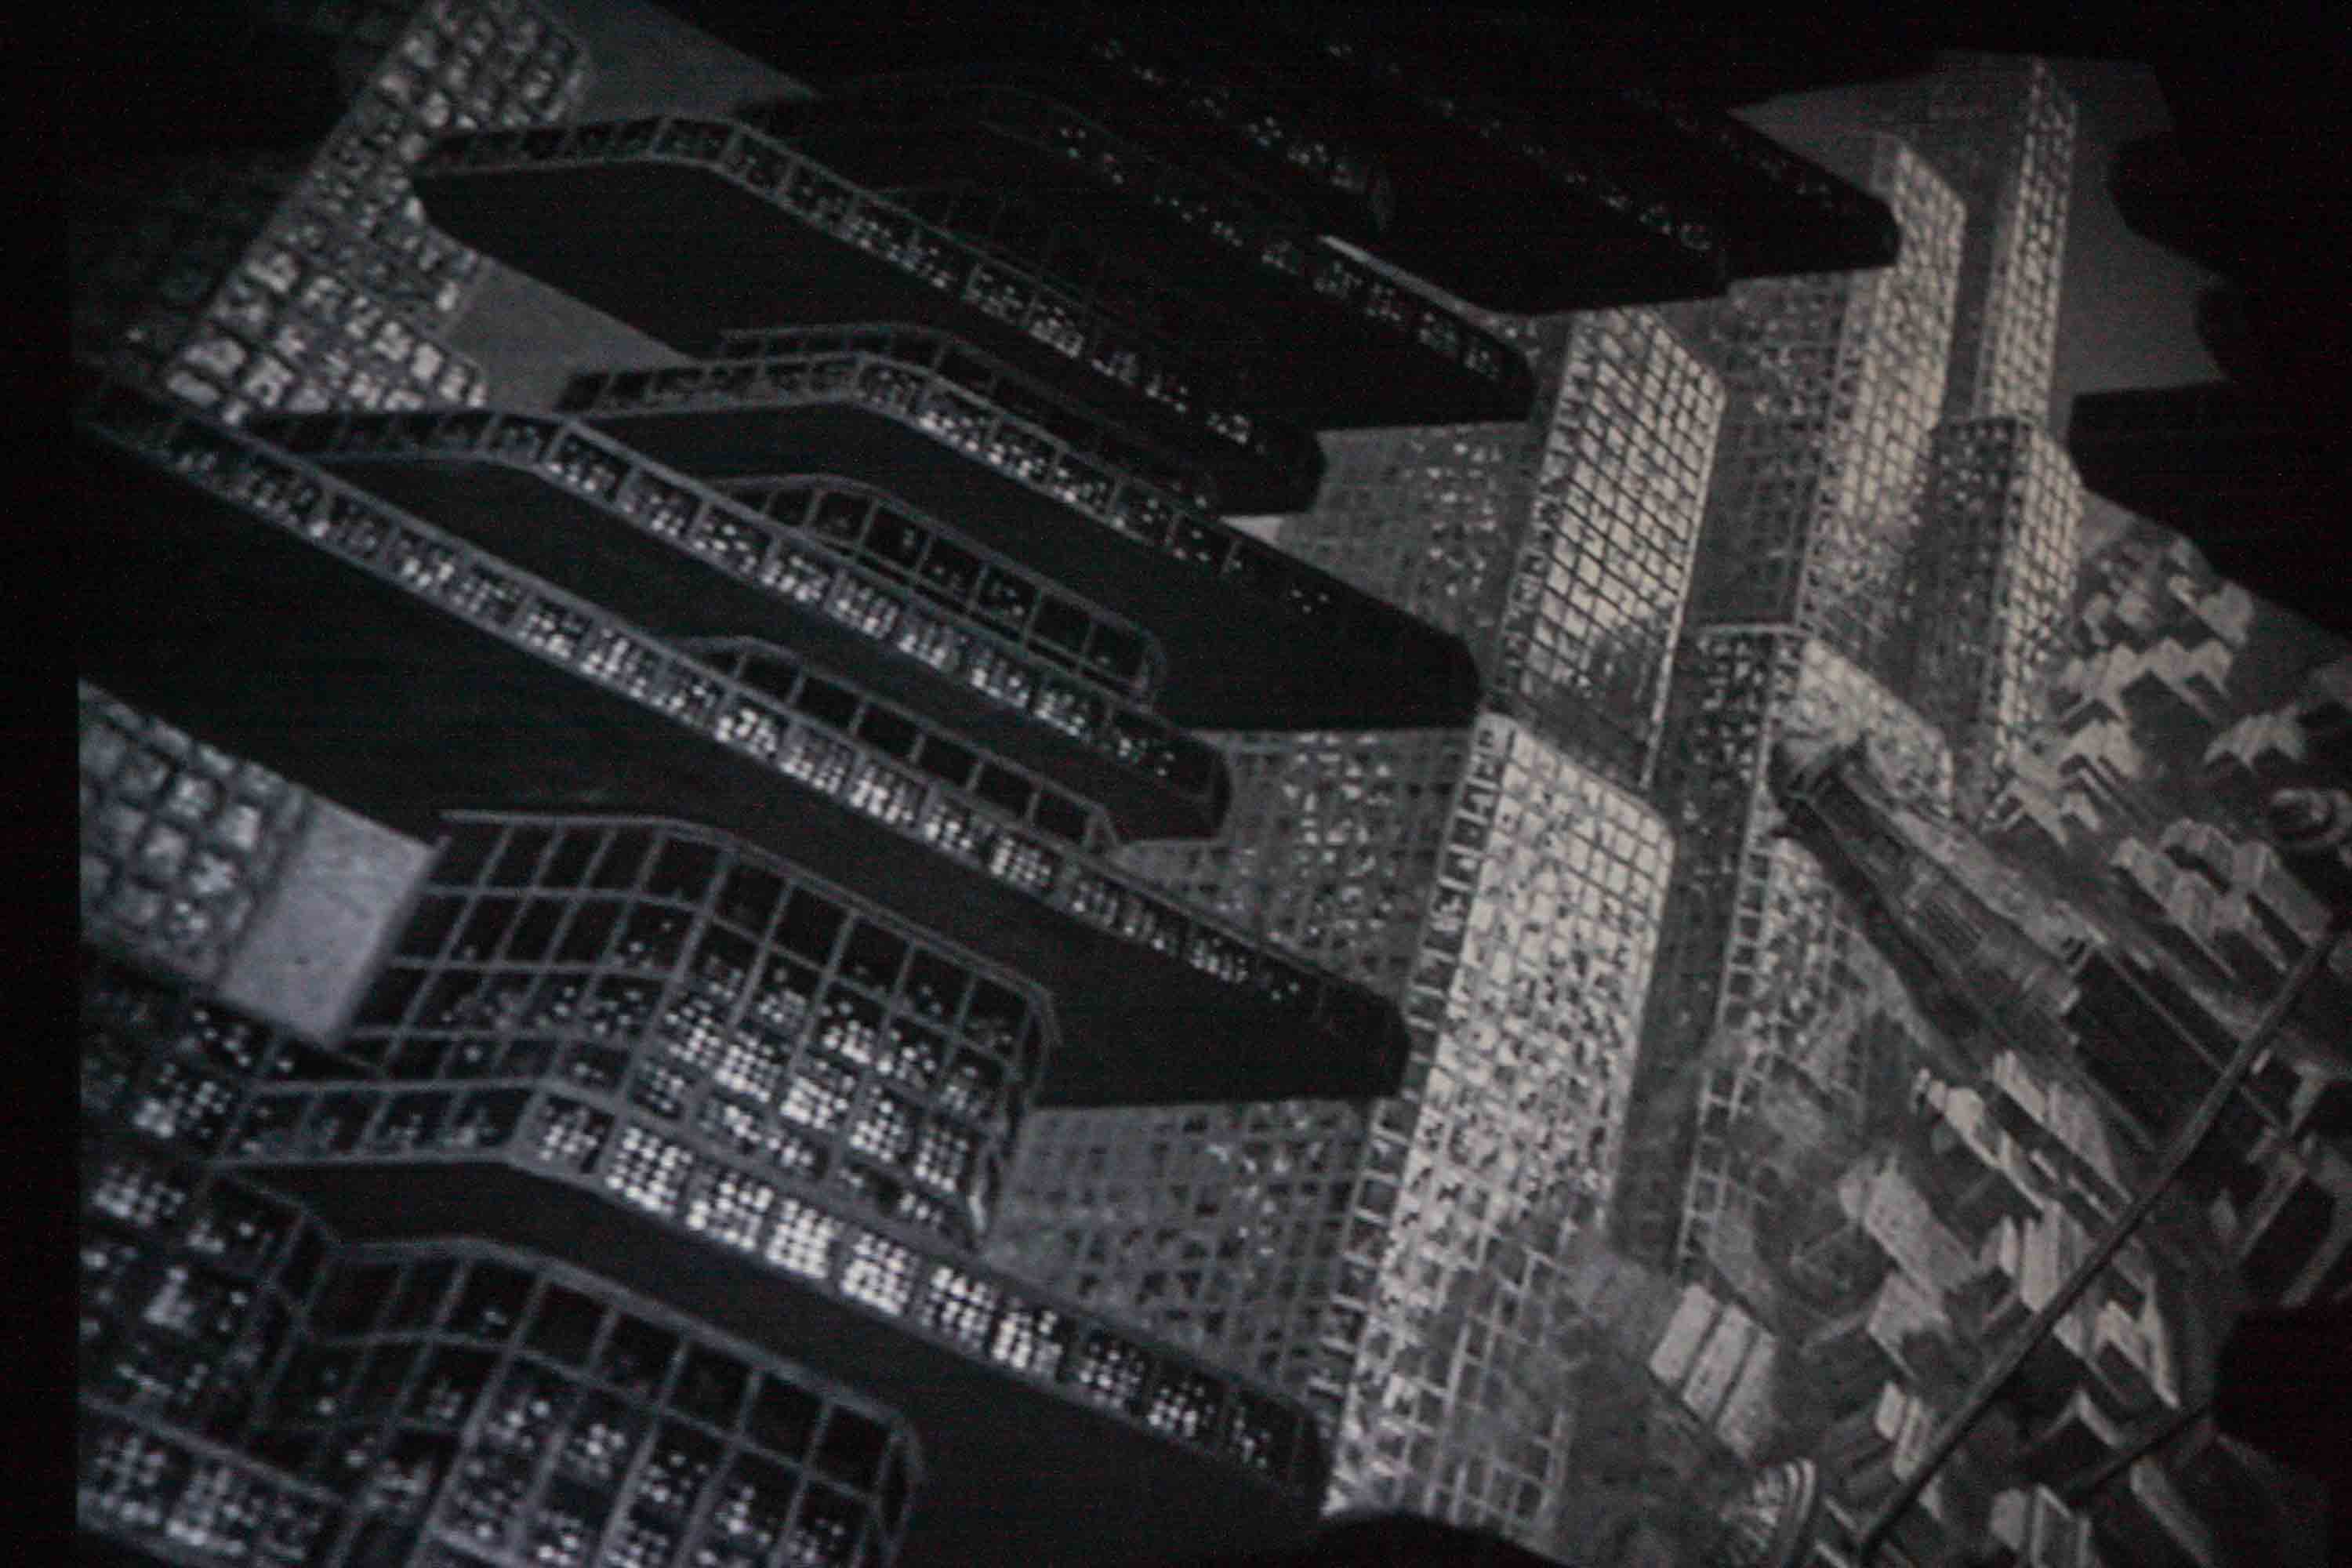 film analysis on metropolis A detailed and comprehensive film synopsis, analysis, and critique.